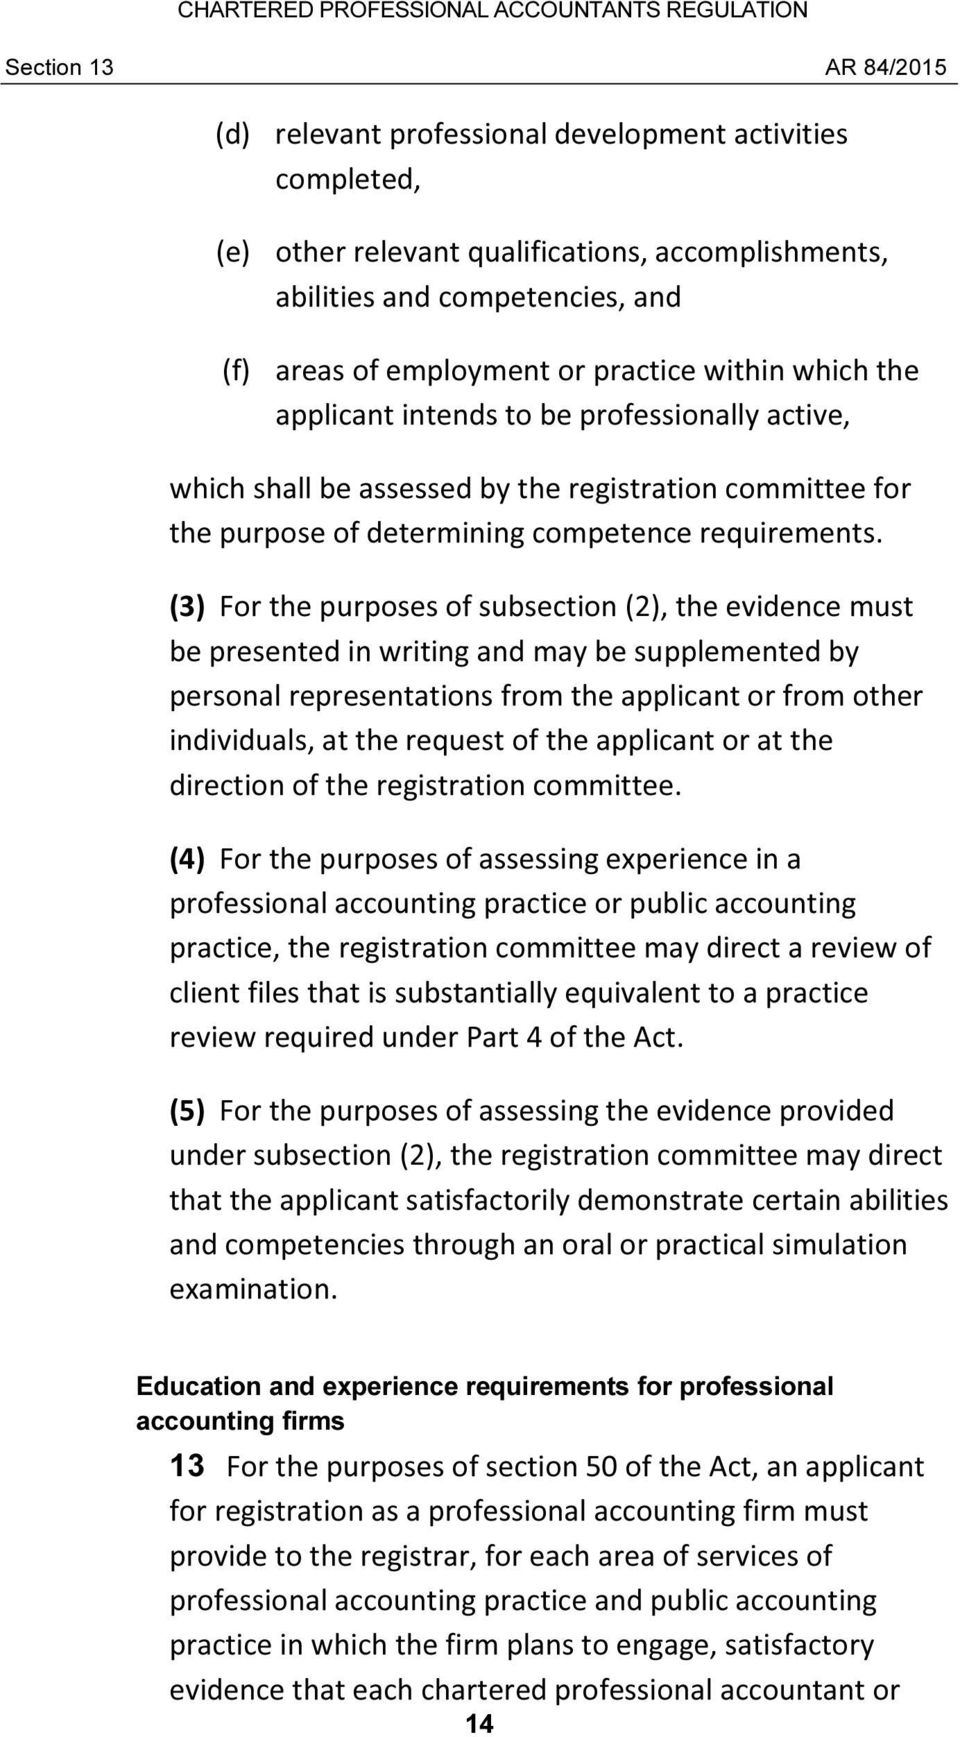 (3) For the purposes of subsection (2), the evidence must be presented in writing and may be supplemented by personal representations from the applicant or from other individuals, at the request of